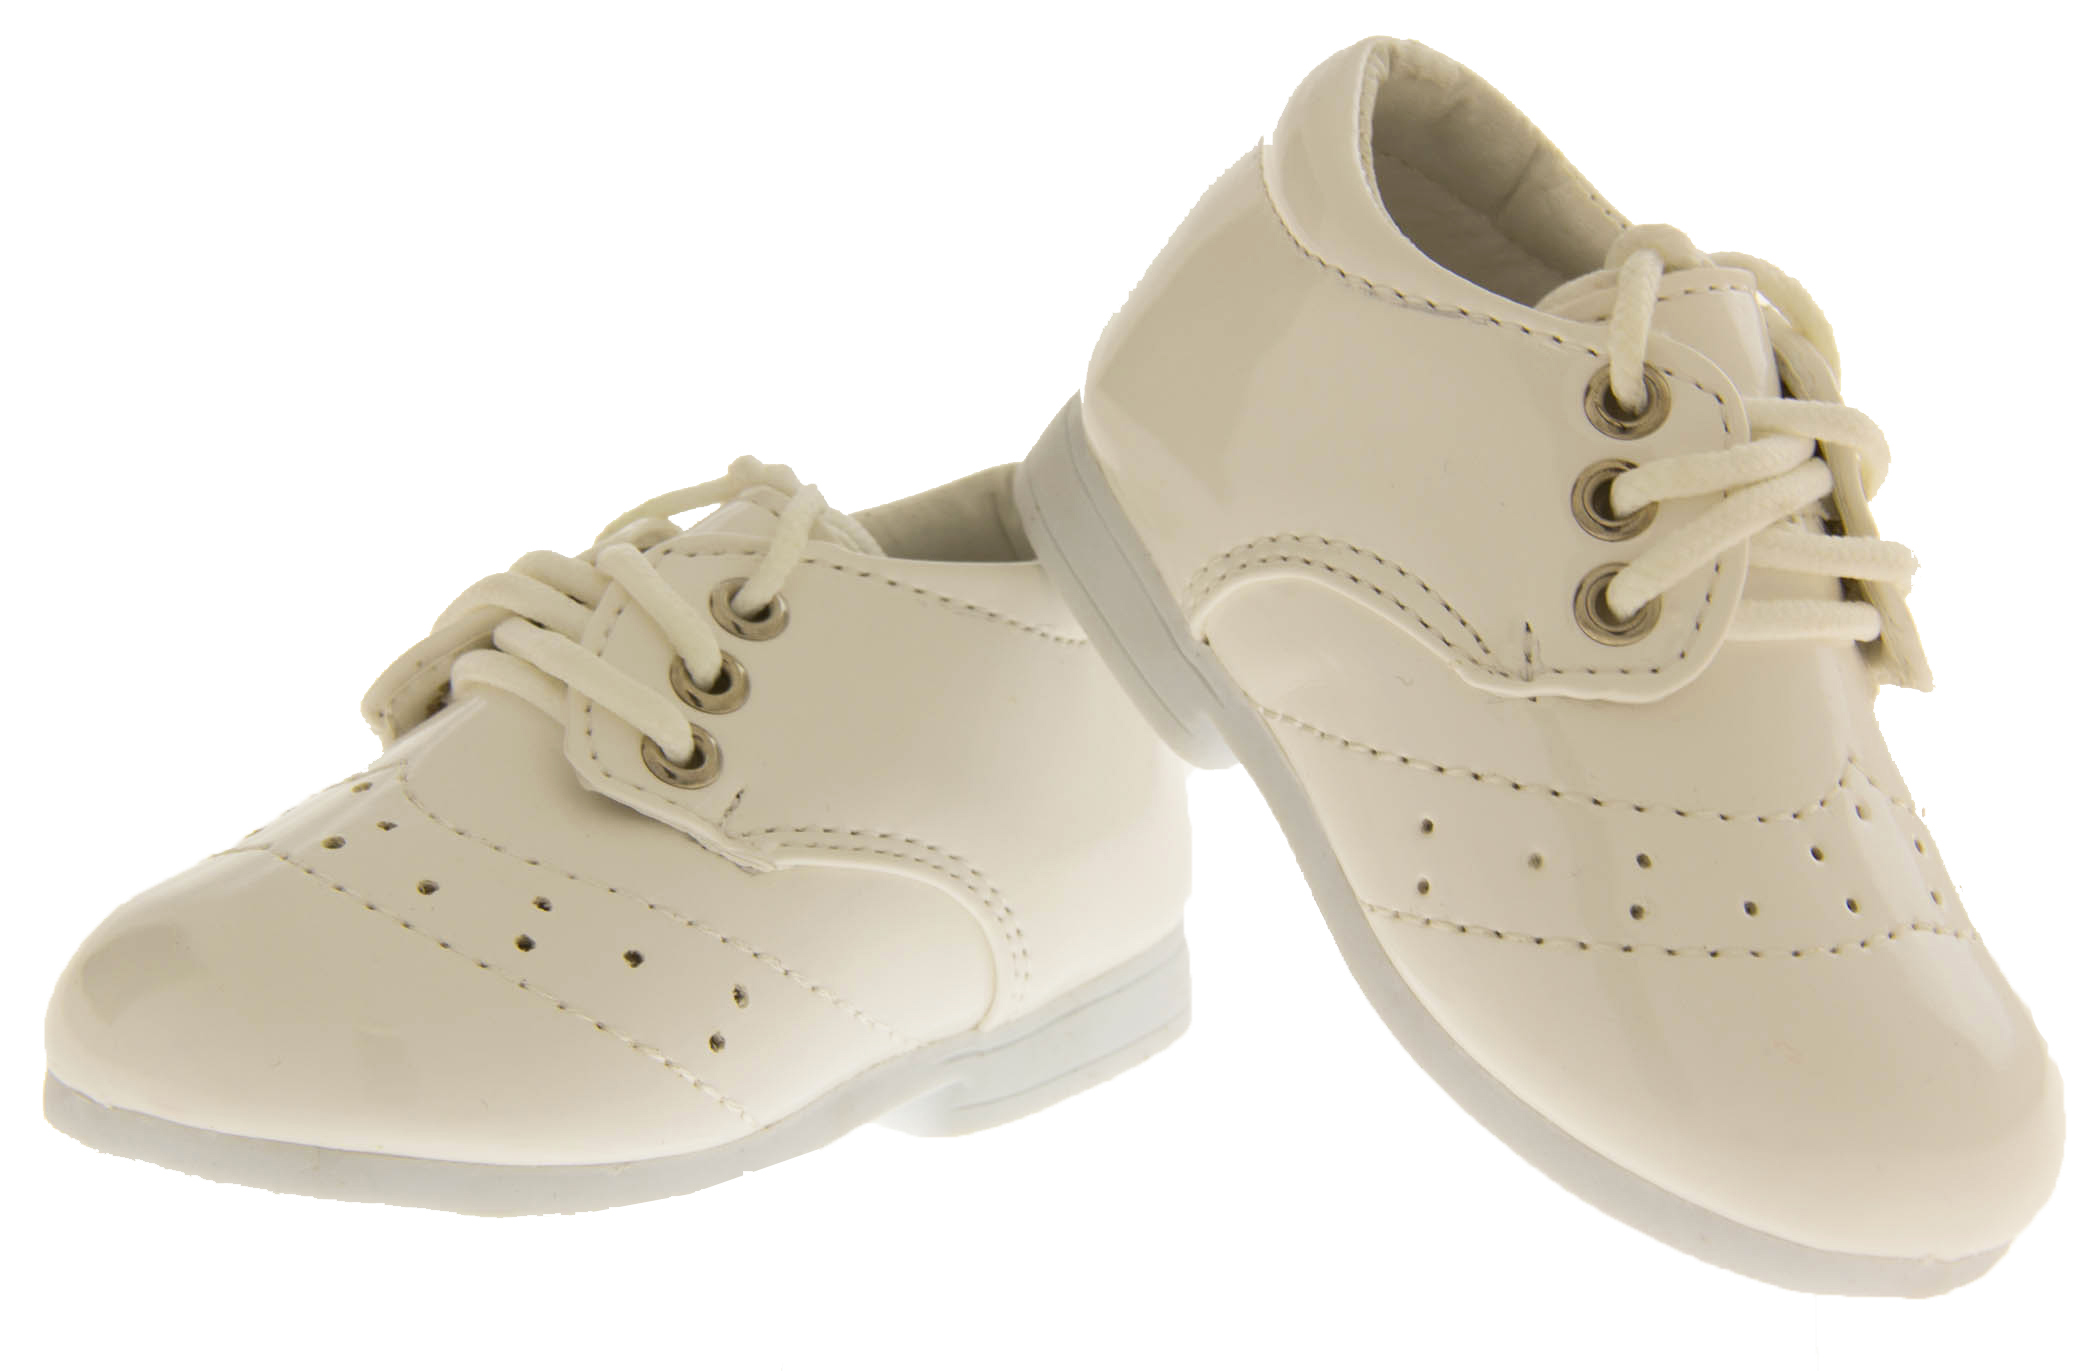 Age/Size/Width Little Kid Size 1 2 3 4 5 6 7 8 9 10 Width M W XW boys' toddler shoe styles Bouncing baby boys need top of the line shoes, too. Made with the same quality materials and construction as our girls' shoes, you can count on our boys' baby shoes to give him the best start. you can count on our.